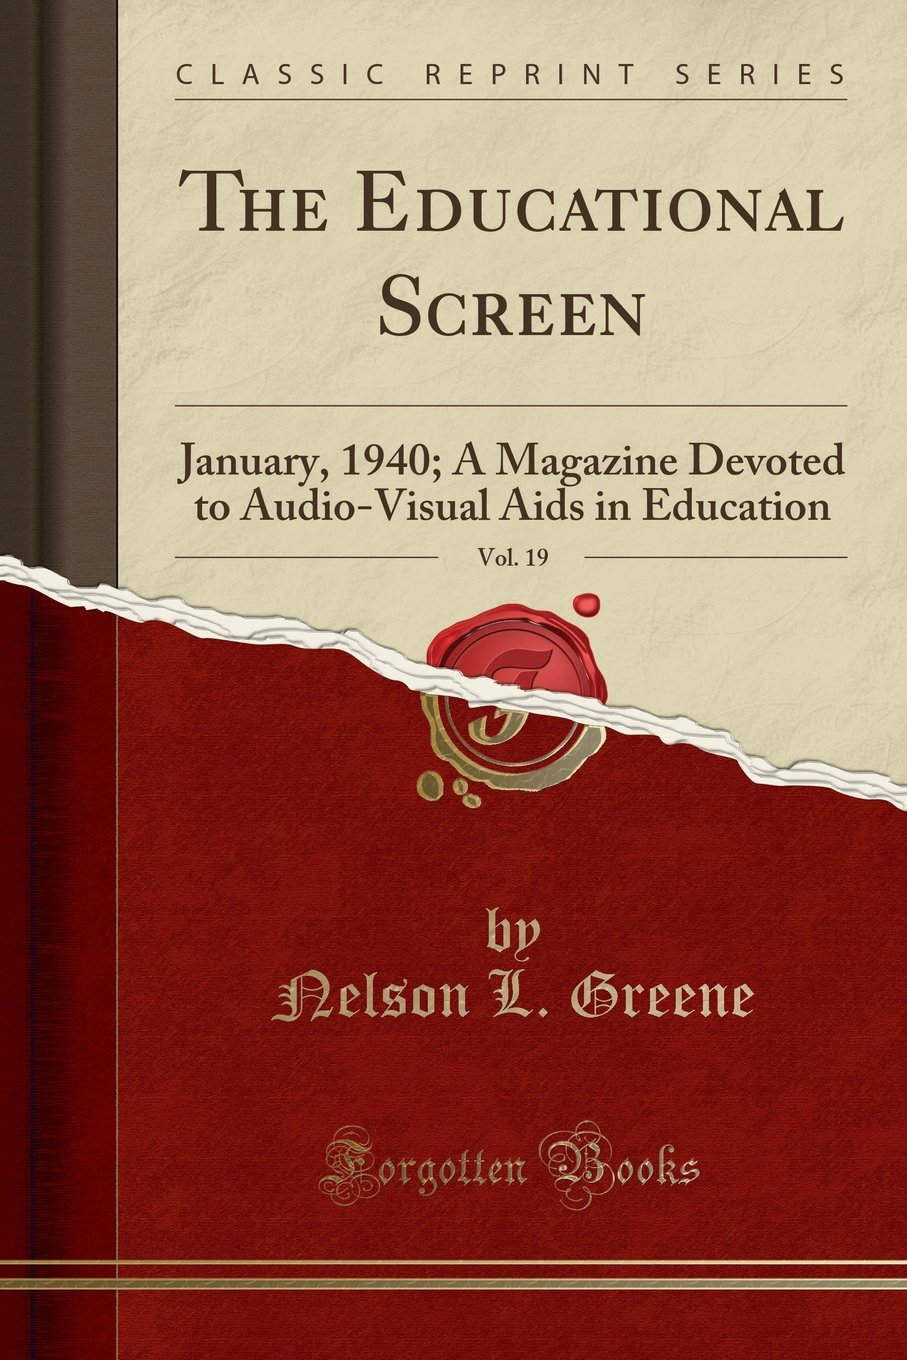 The Educational Screen, Vol. 19: January, 1940; A Magazine Devoted to Audio-Visual Aids in Education (Classic Reprint)